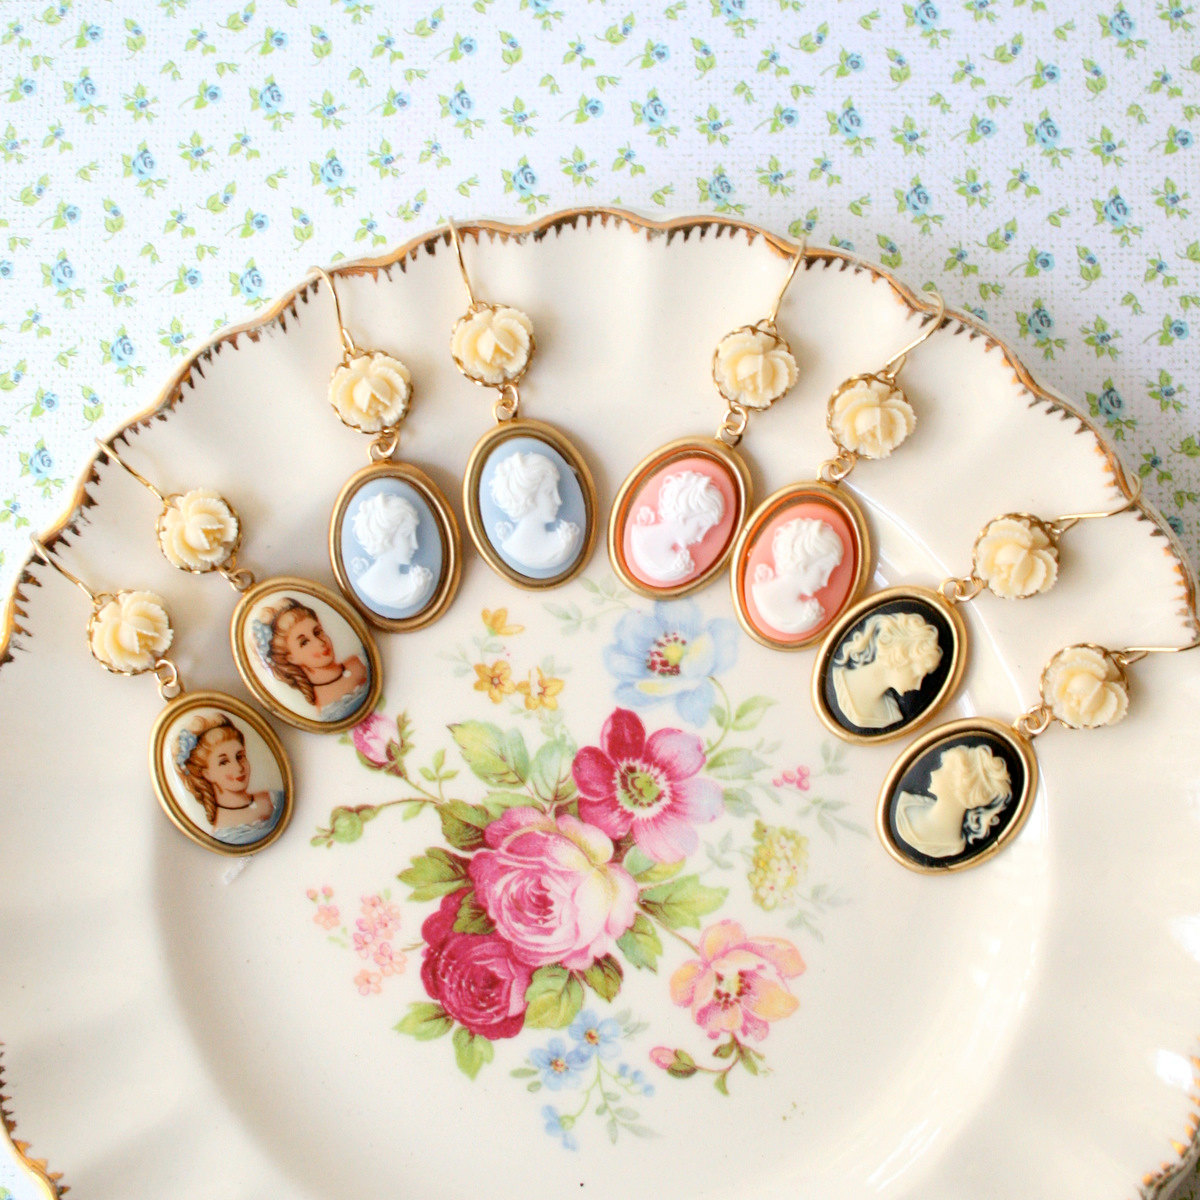 Vintage Wedding Ideas Cameo Infused Weddings From Etsy